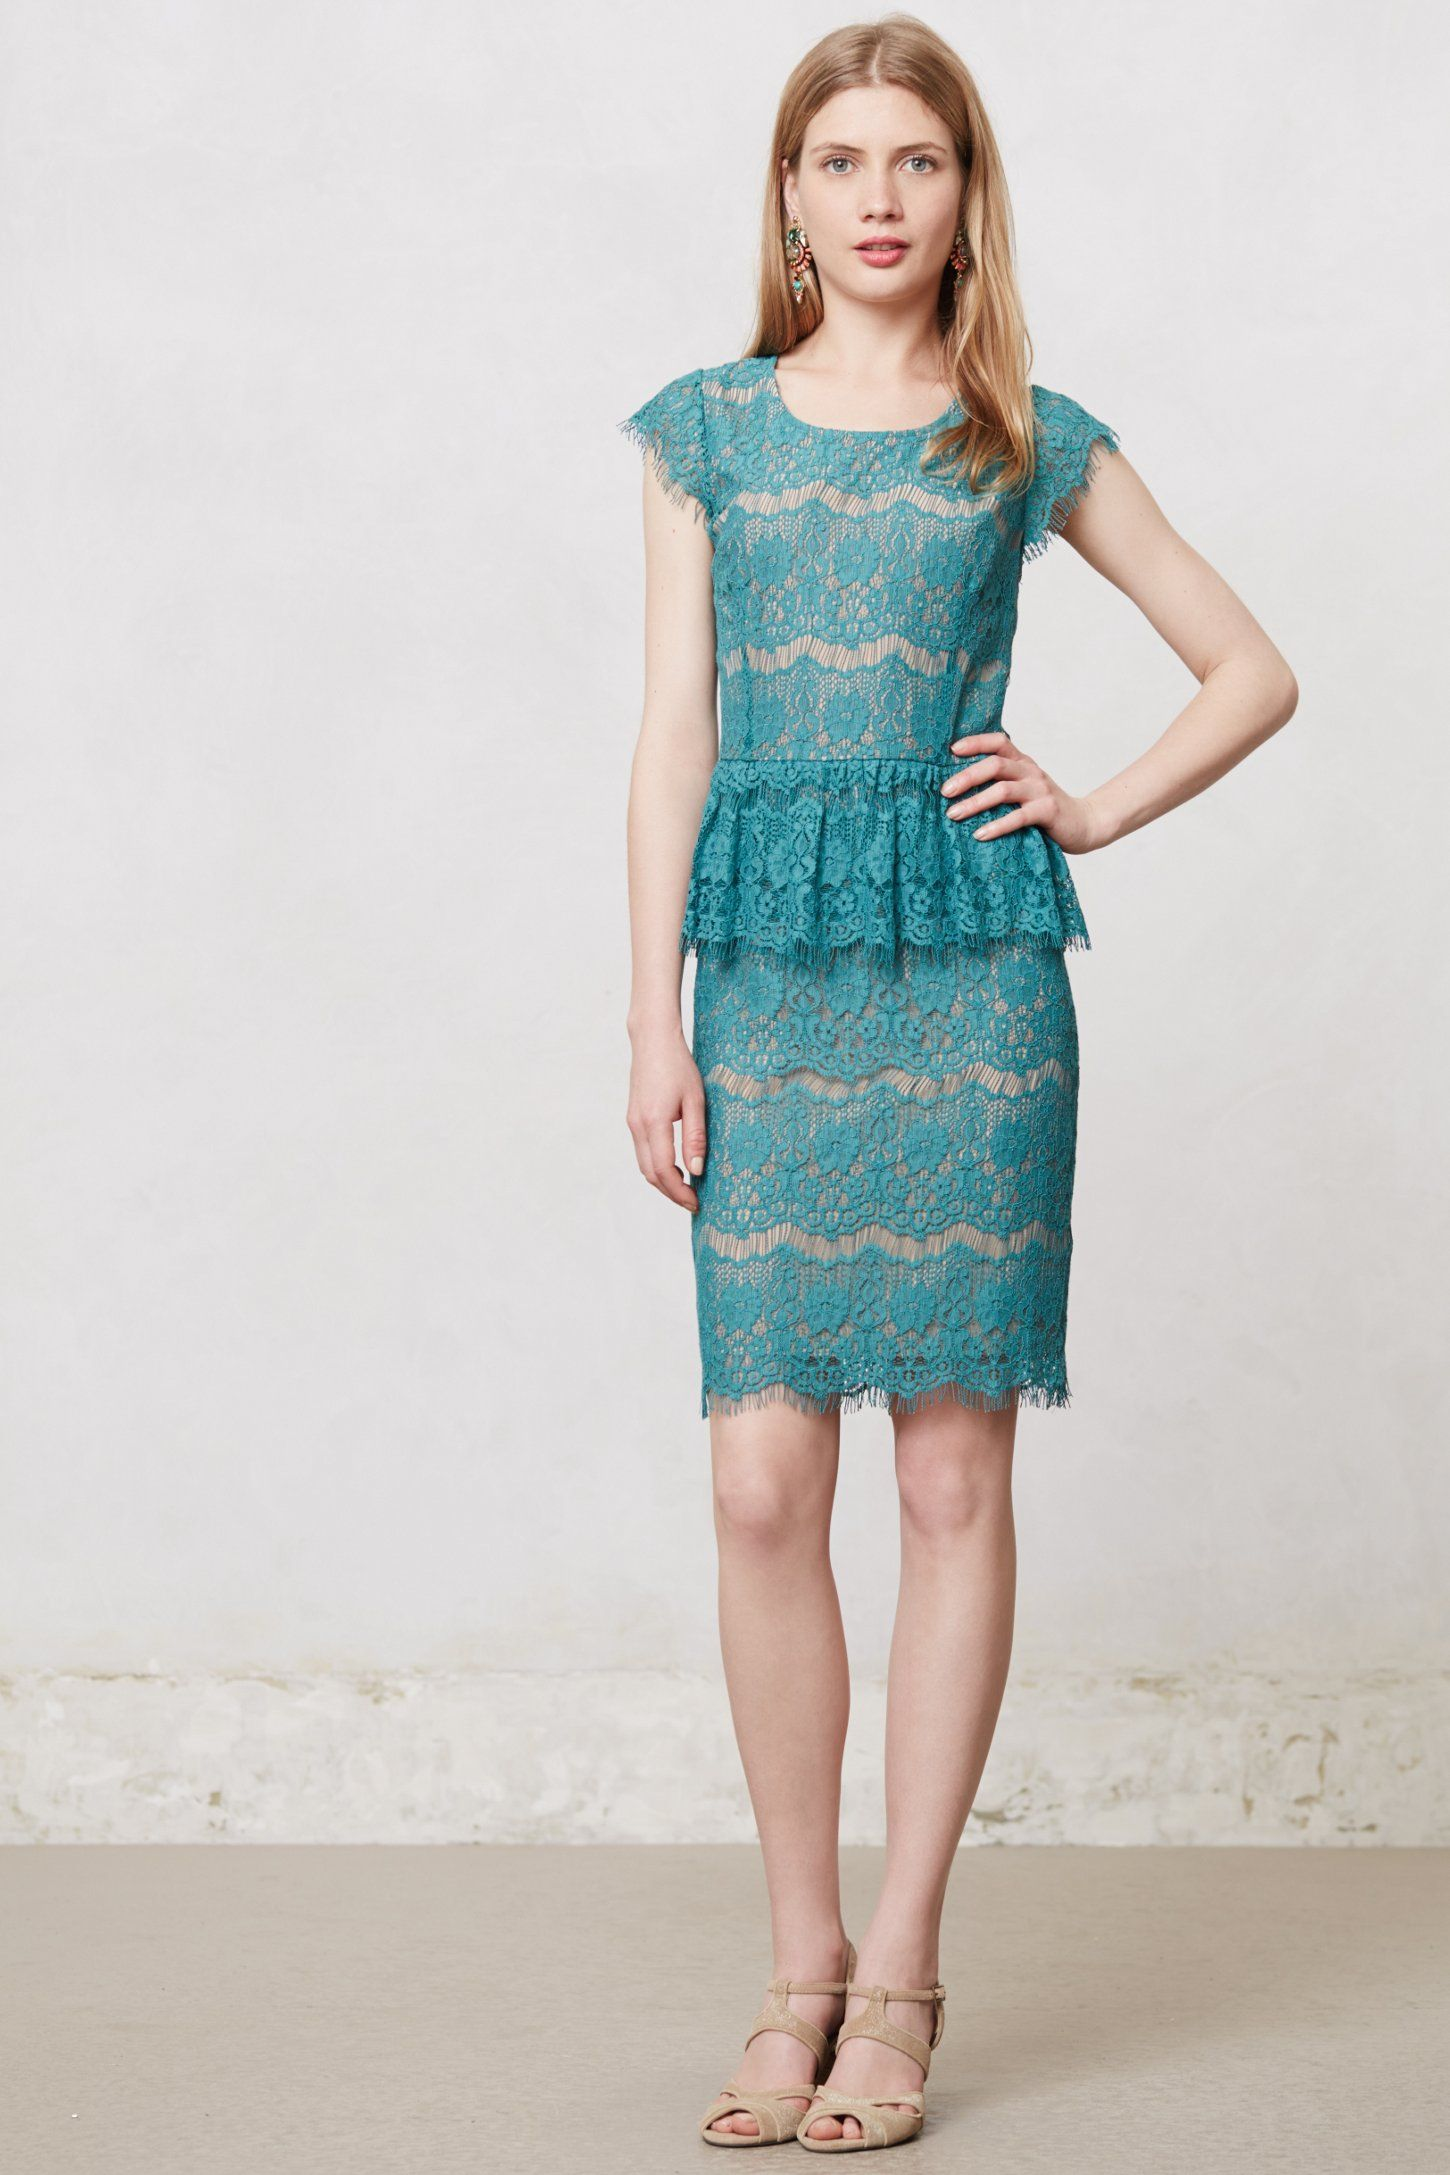 Elsa peplum dress anthropologie fashion to wear elsa peplum dress anthropologie ombrellifo Gallery